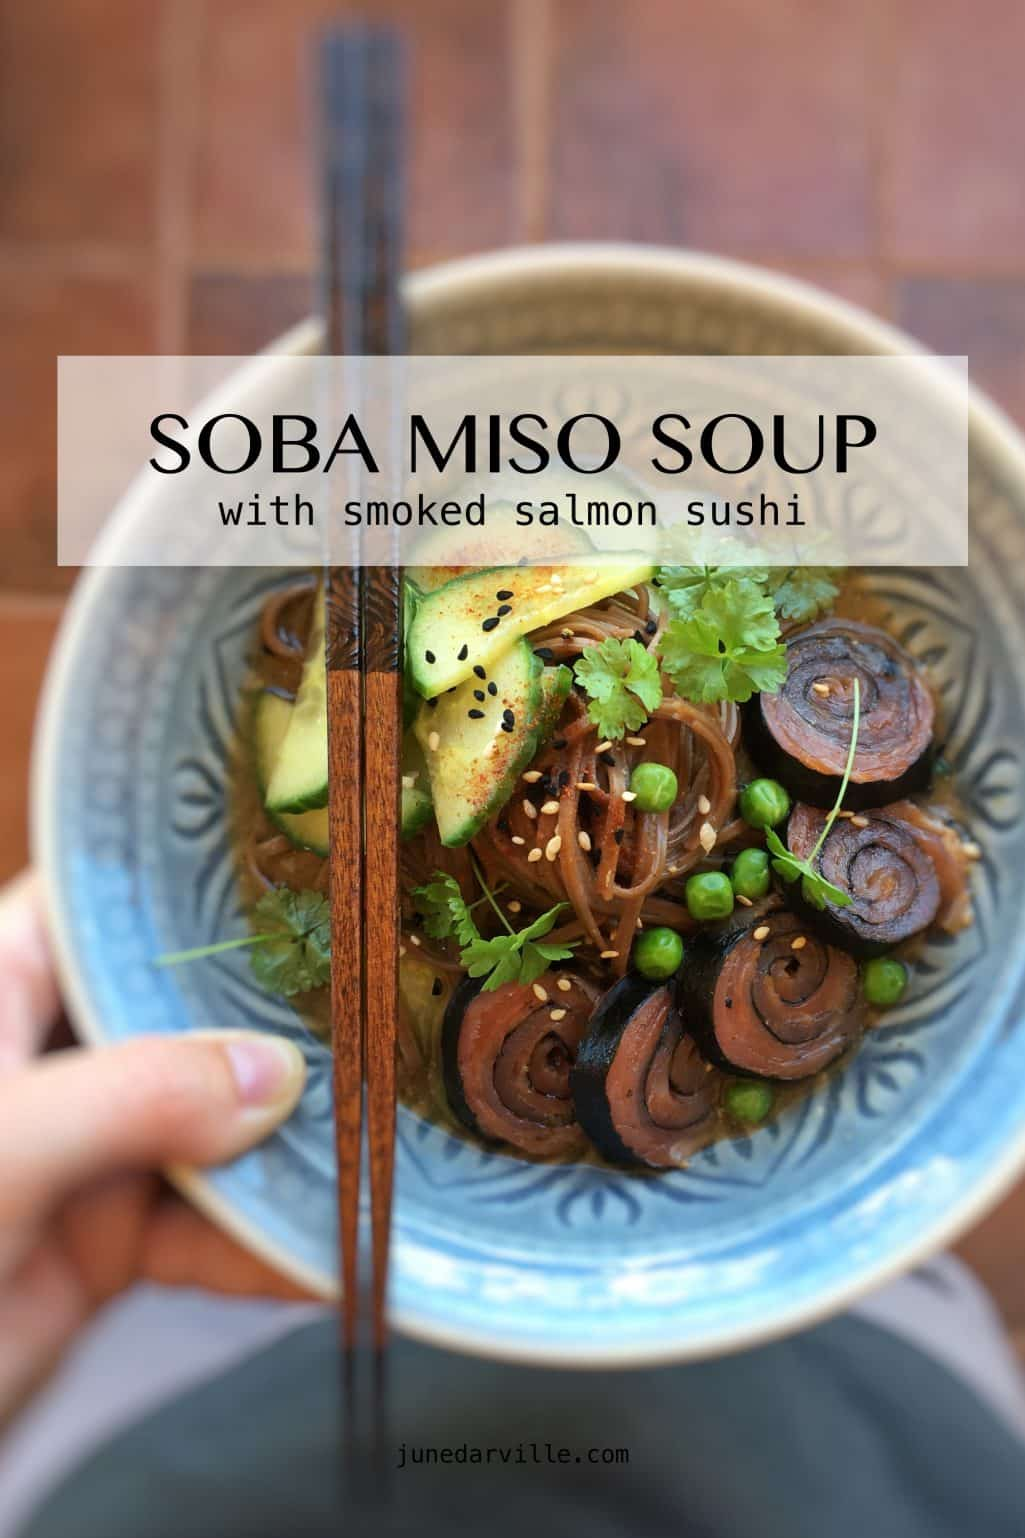 Soba Miso Soup with Smoked Salmon Sushi